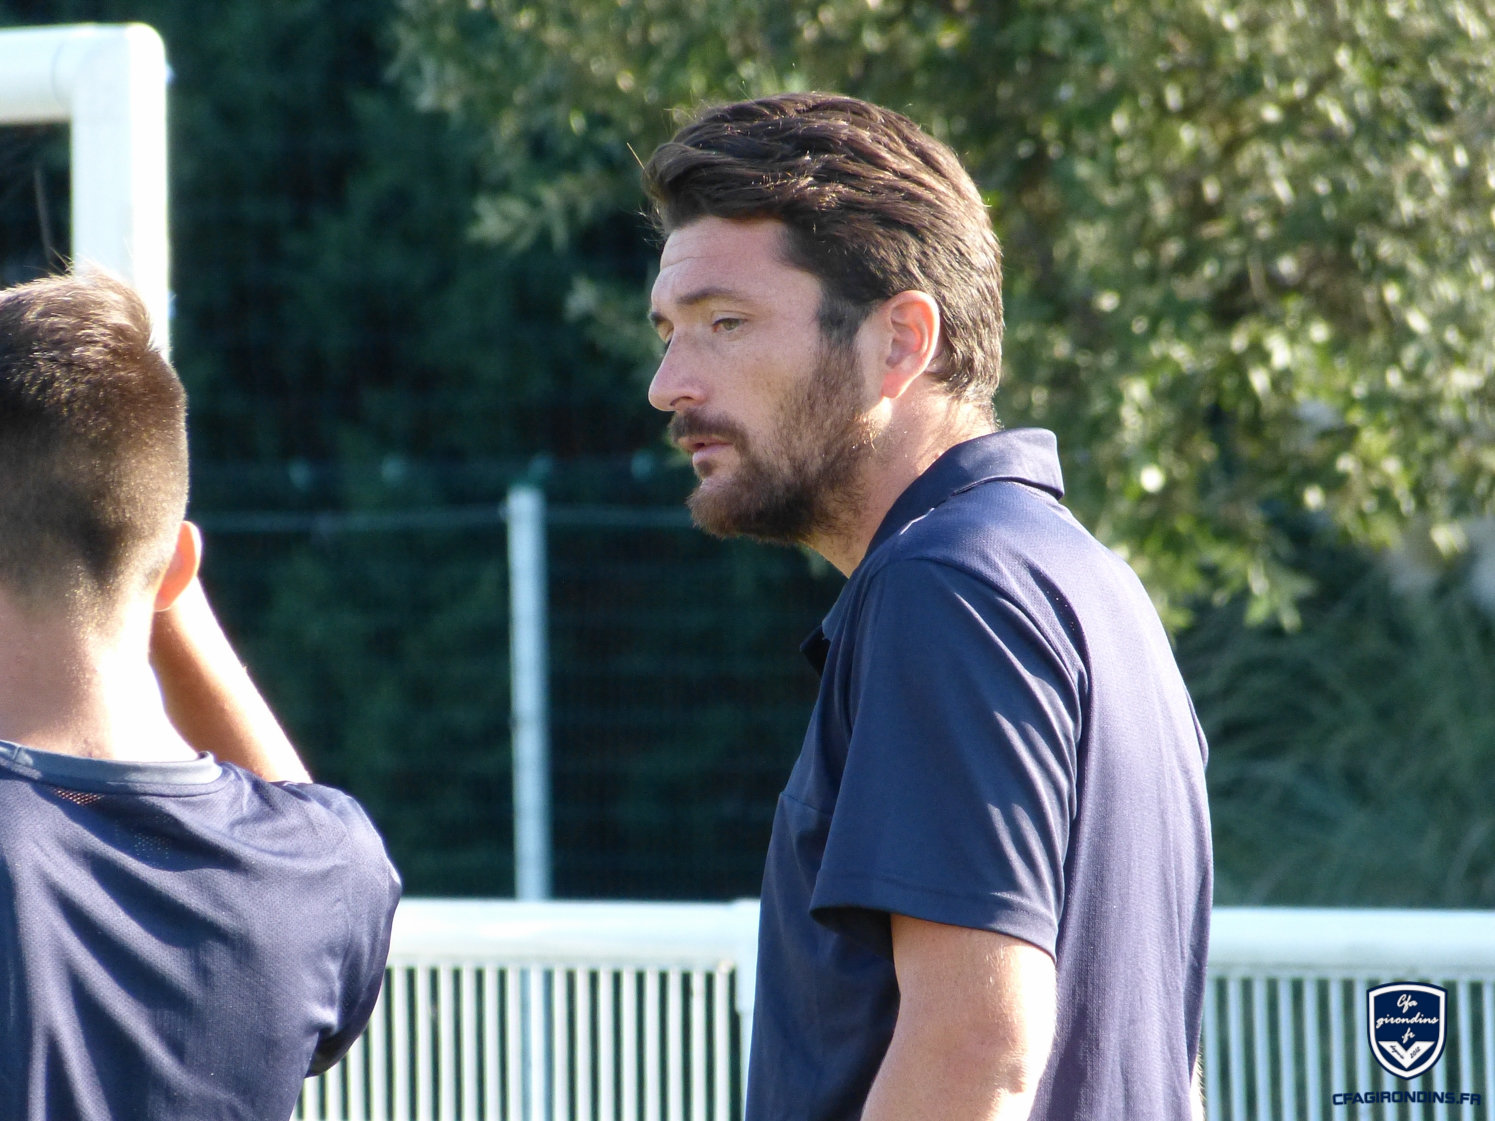 Cfa Girondins : Nouvelle victoire des U15 - Formation Girondins